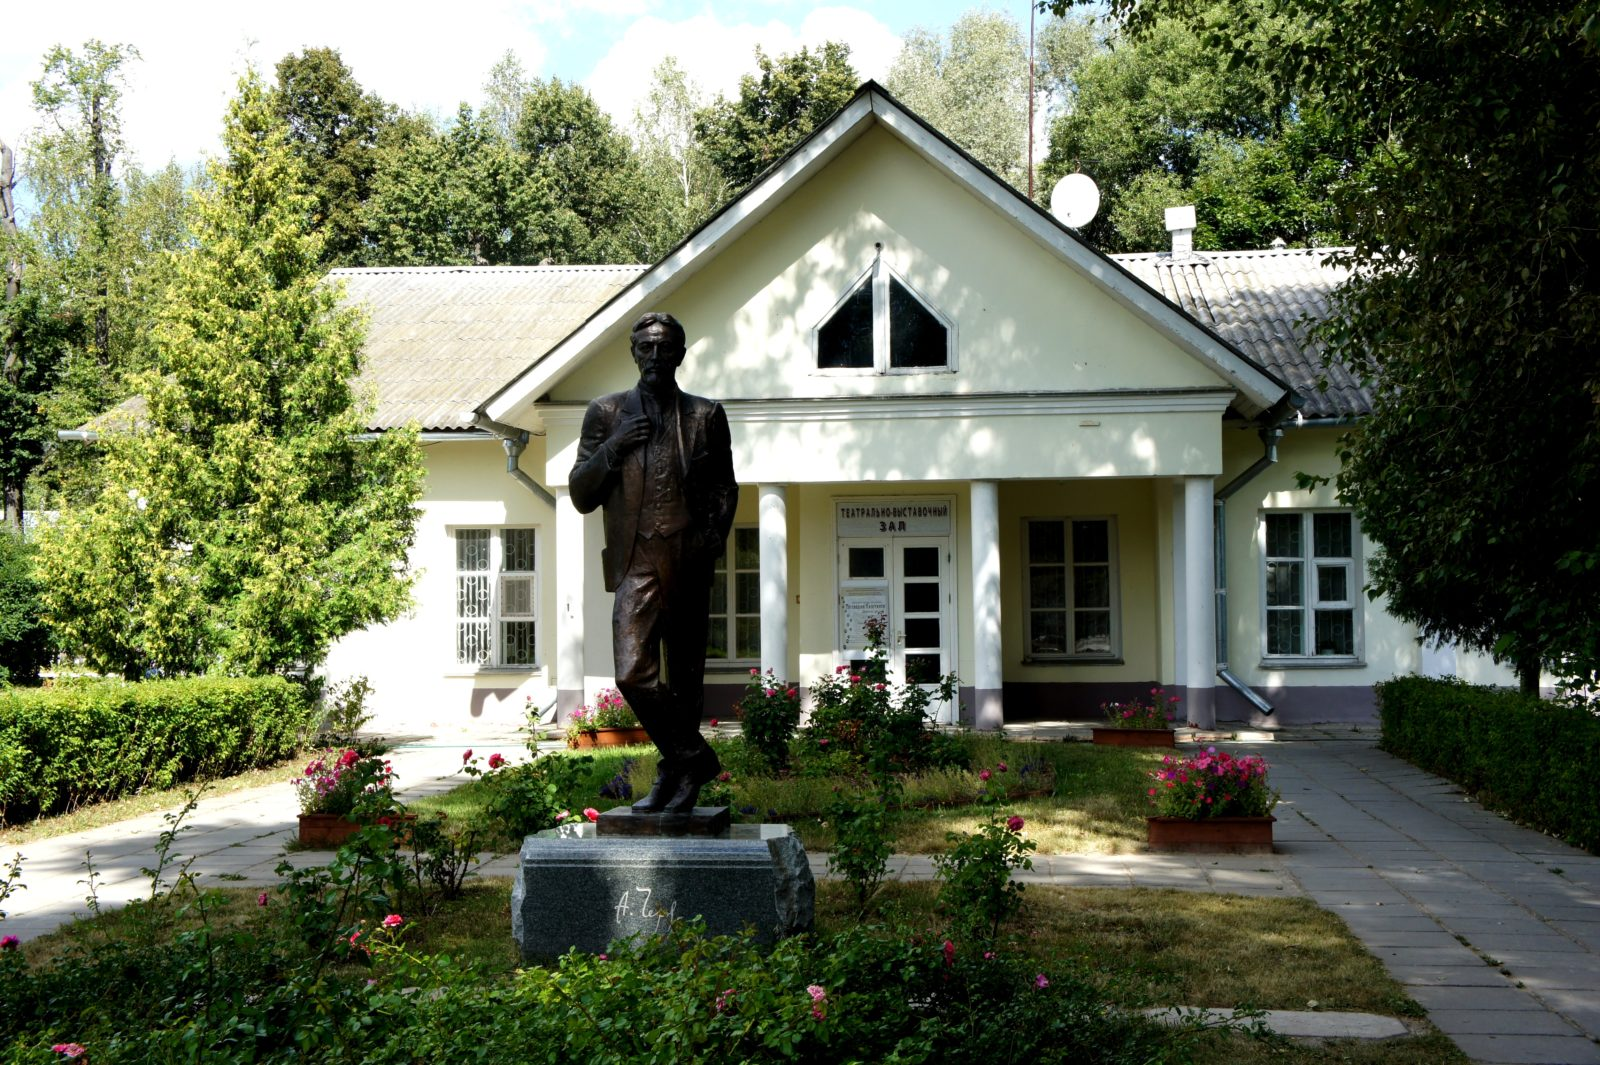 Tours in Moscow, Melikhovo , Tour to Melihovo near Moscow, Melokhovo in English, History of Melihovo tour, excursion to the Melikhovo estate, Melihovo Estate Tour in English, tour to Chekhov estate near Moscow, excursions to a Chekhov estate near Moscow, Chekhov Museum near Moscow, Anton Chekhov Museum near Moscow, excursions in Moscow in English, tours in Moscow, Moscow tours, excursions in Moscow, Moscow excursions, group excursions in English, touring Moscow, Moscow sightseeing, tours in English, tours with English-speaking guide